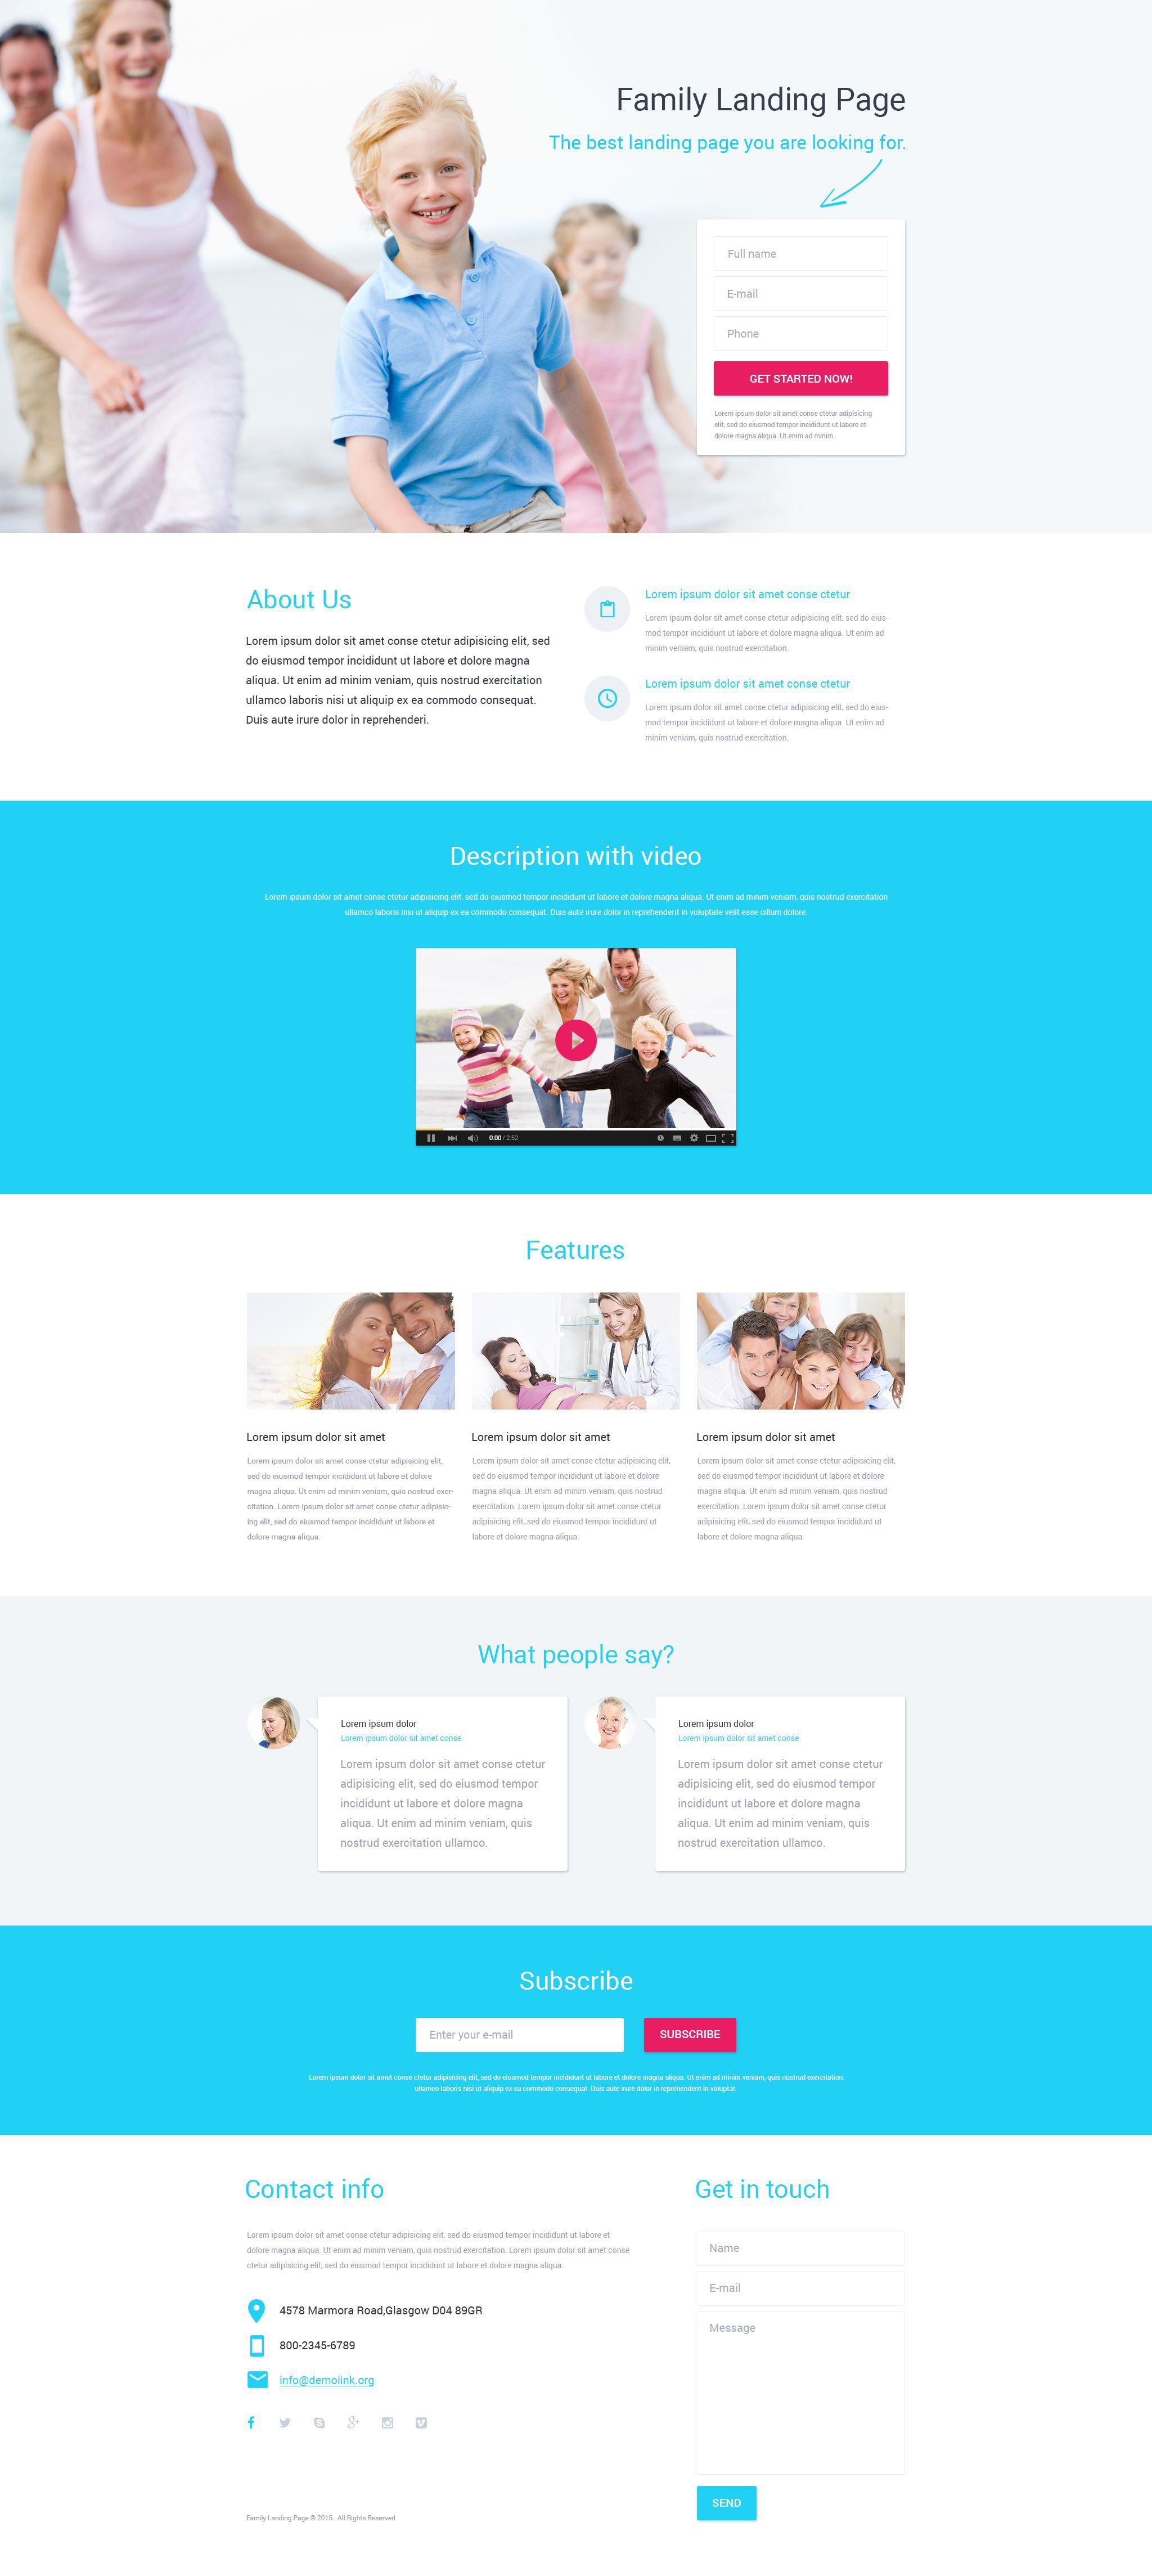 The Family Life Portal Landing Page Template Design 53459, one of the best Landing Page templates of its kind (family, most popular), also known as family life portal Landing Page template, site Landing Page template, harmony Landing Page template, hearth Landing Page template, home Landing Page template, children Landing Page template, baby Landing Page template, child Landing Page template, mother Landing Page template, father Landing Page template, grandparents Landing Page template, relatives Landing Page template, relationship Landing Page template, close care Landing Page template, happiness Landing Page template, education Landing Page template, youth Landing Page template, health Landing Page template, kids Landing Page template, fun Landing Page template, advices Landing Page template, events Landing Page template, entertainment Landing Page template, information Landing Page template, support Landing Page template, directory Landing Page template, psychology Landing Page template, services Landing Page template, culture Landing Page template, tips and related with family life portal, site, harmony, hearth, home, children, baby, child, mother, father, grandparents, relatives, relationship, close care, happiness, education, youth, health, kids, fun, advices, events, entertainment, information, support, directory, psychology, services, culture, tips, etc.